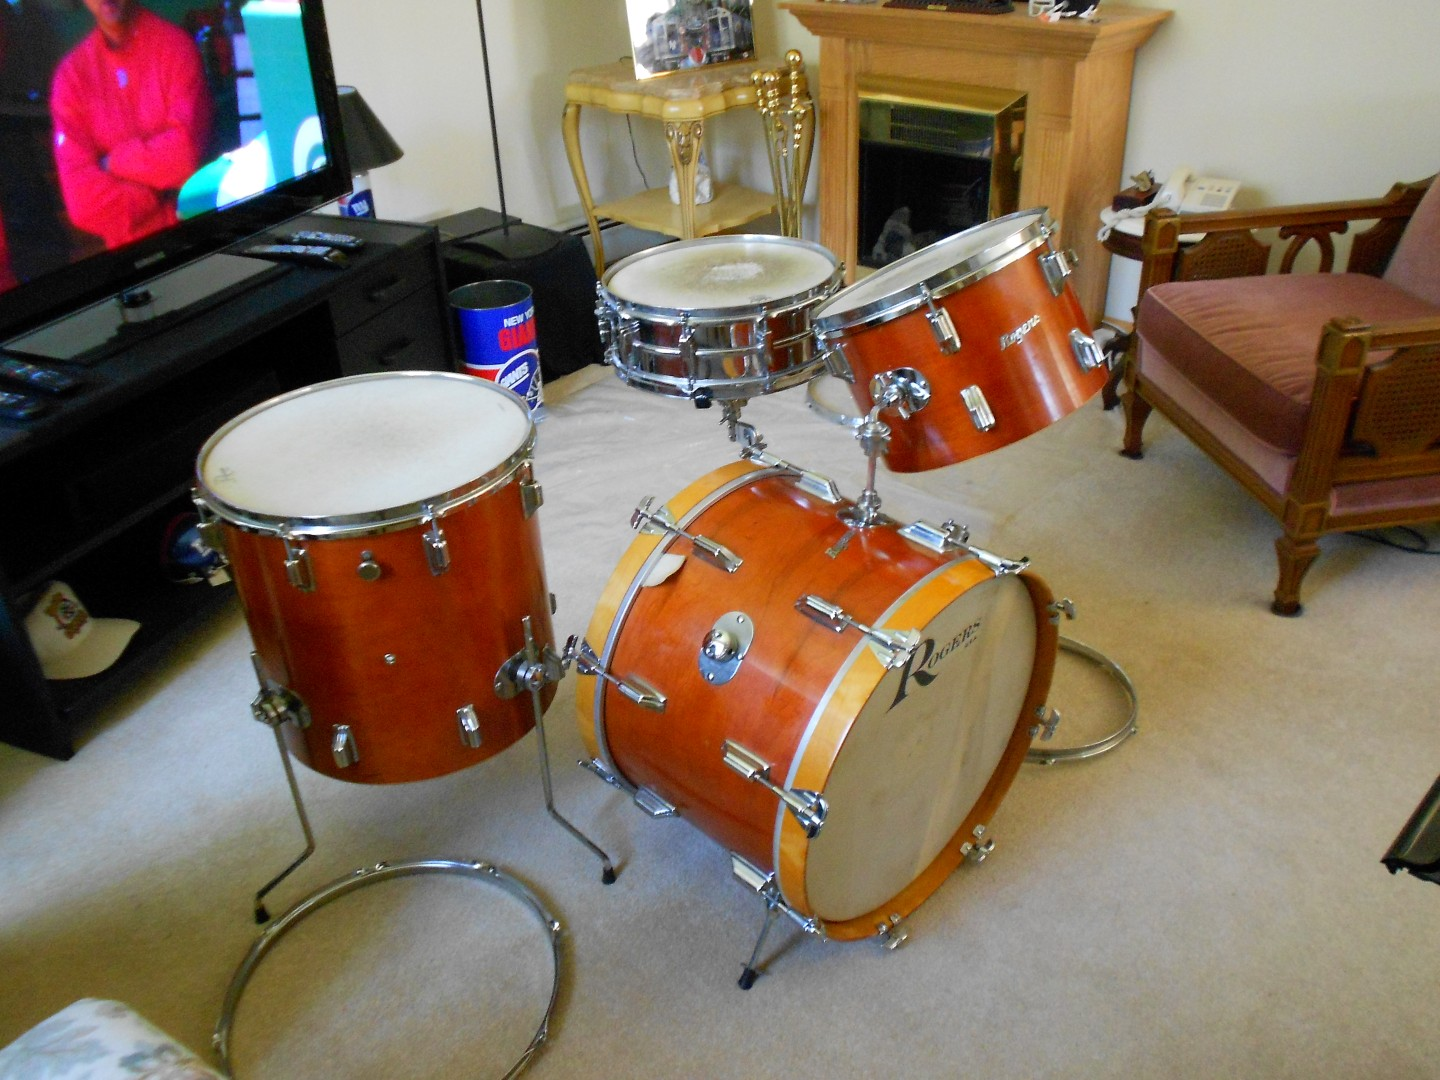 1967 rogers 3 piece drum set with 1967 ludwig chrome snare for sale classifieds. Black Bedroom Furniture Sets. Home Design Ideas